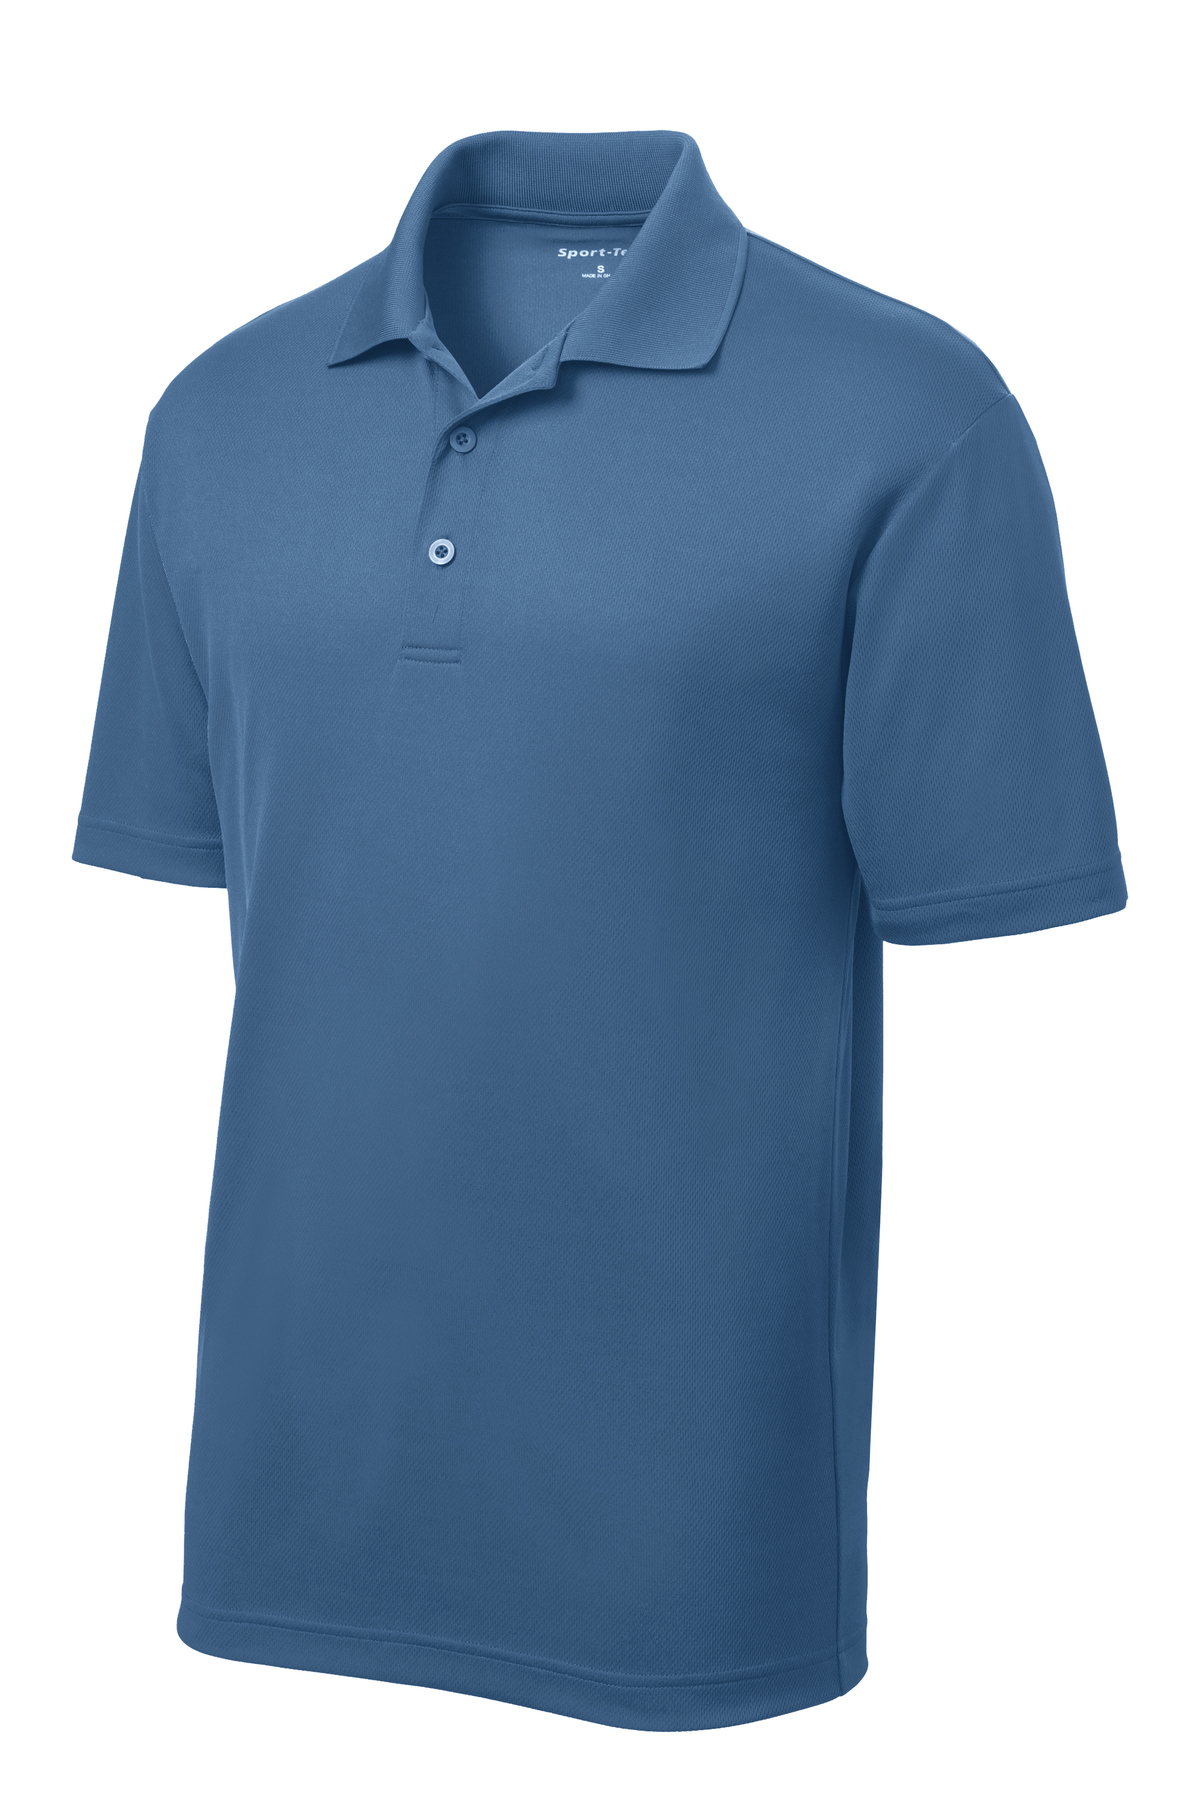 729053aa7 ... Sport-Tek® PosiCharge® RacerMesh® Polo. A maximum of 8 logos have been  uploaded. Please remove a logo from My Logos to continue